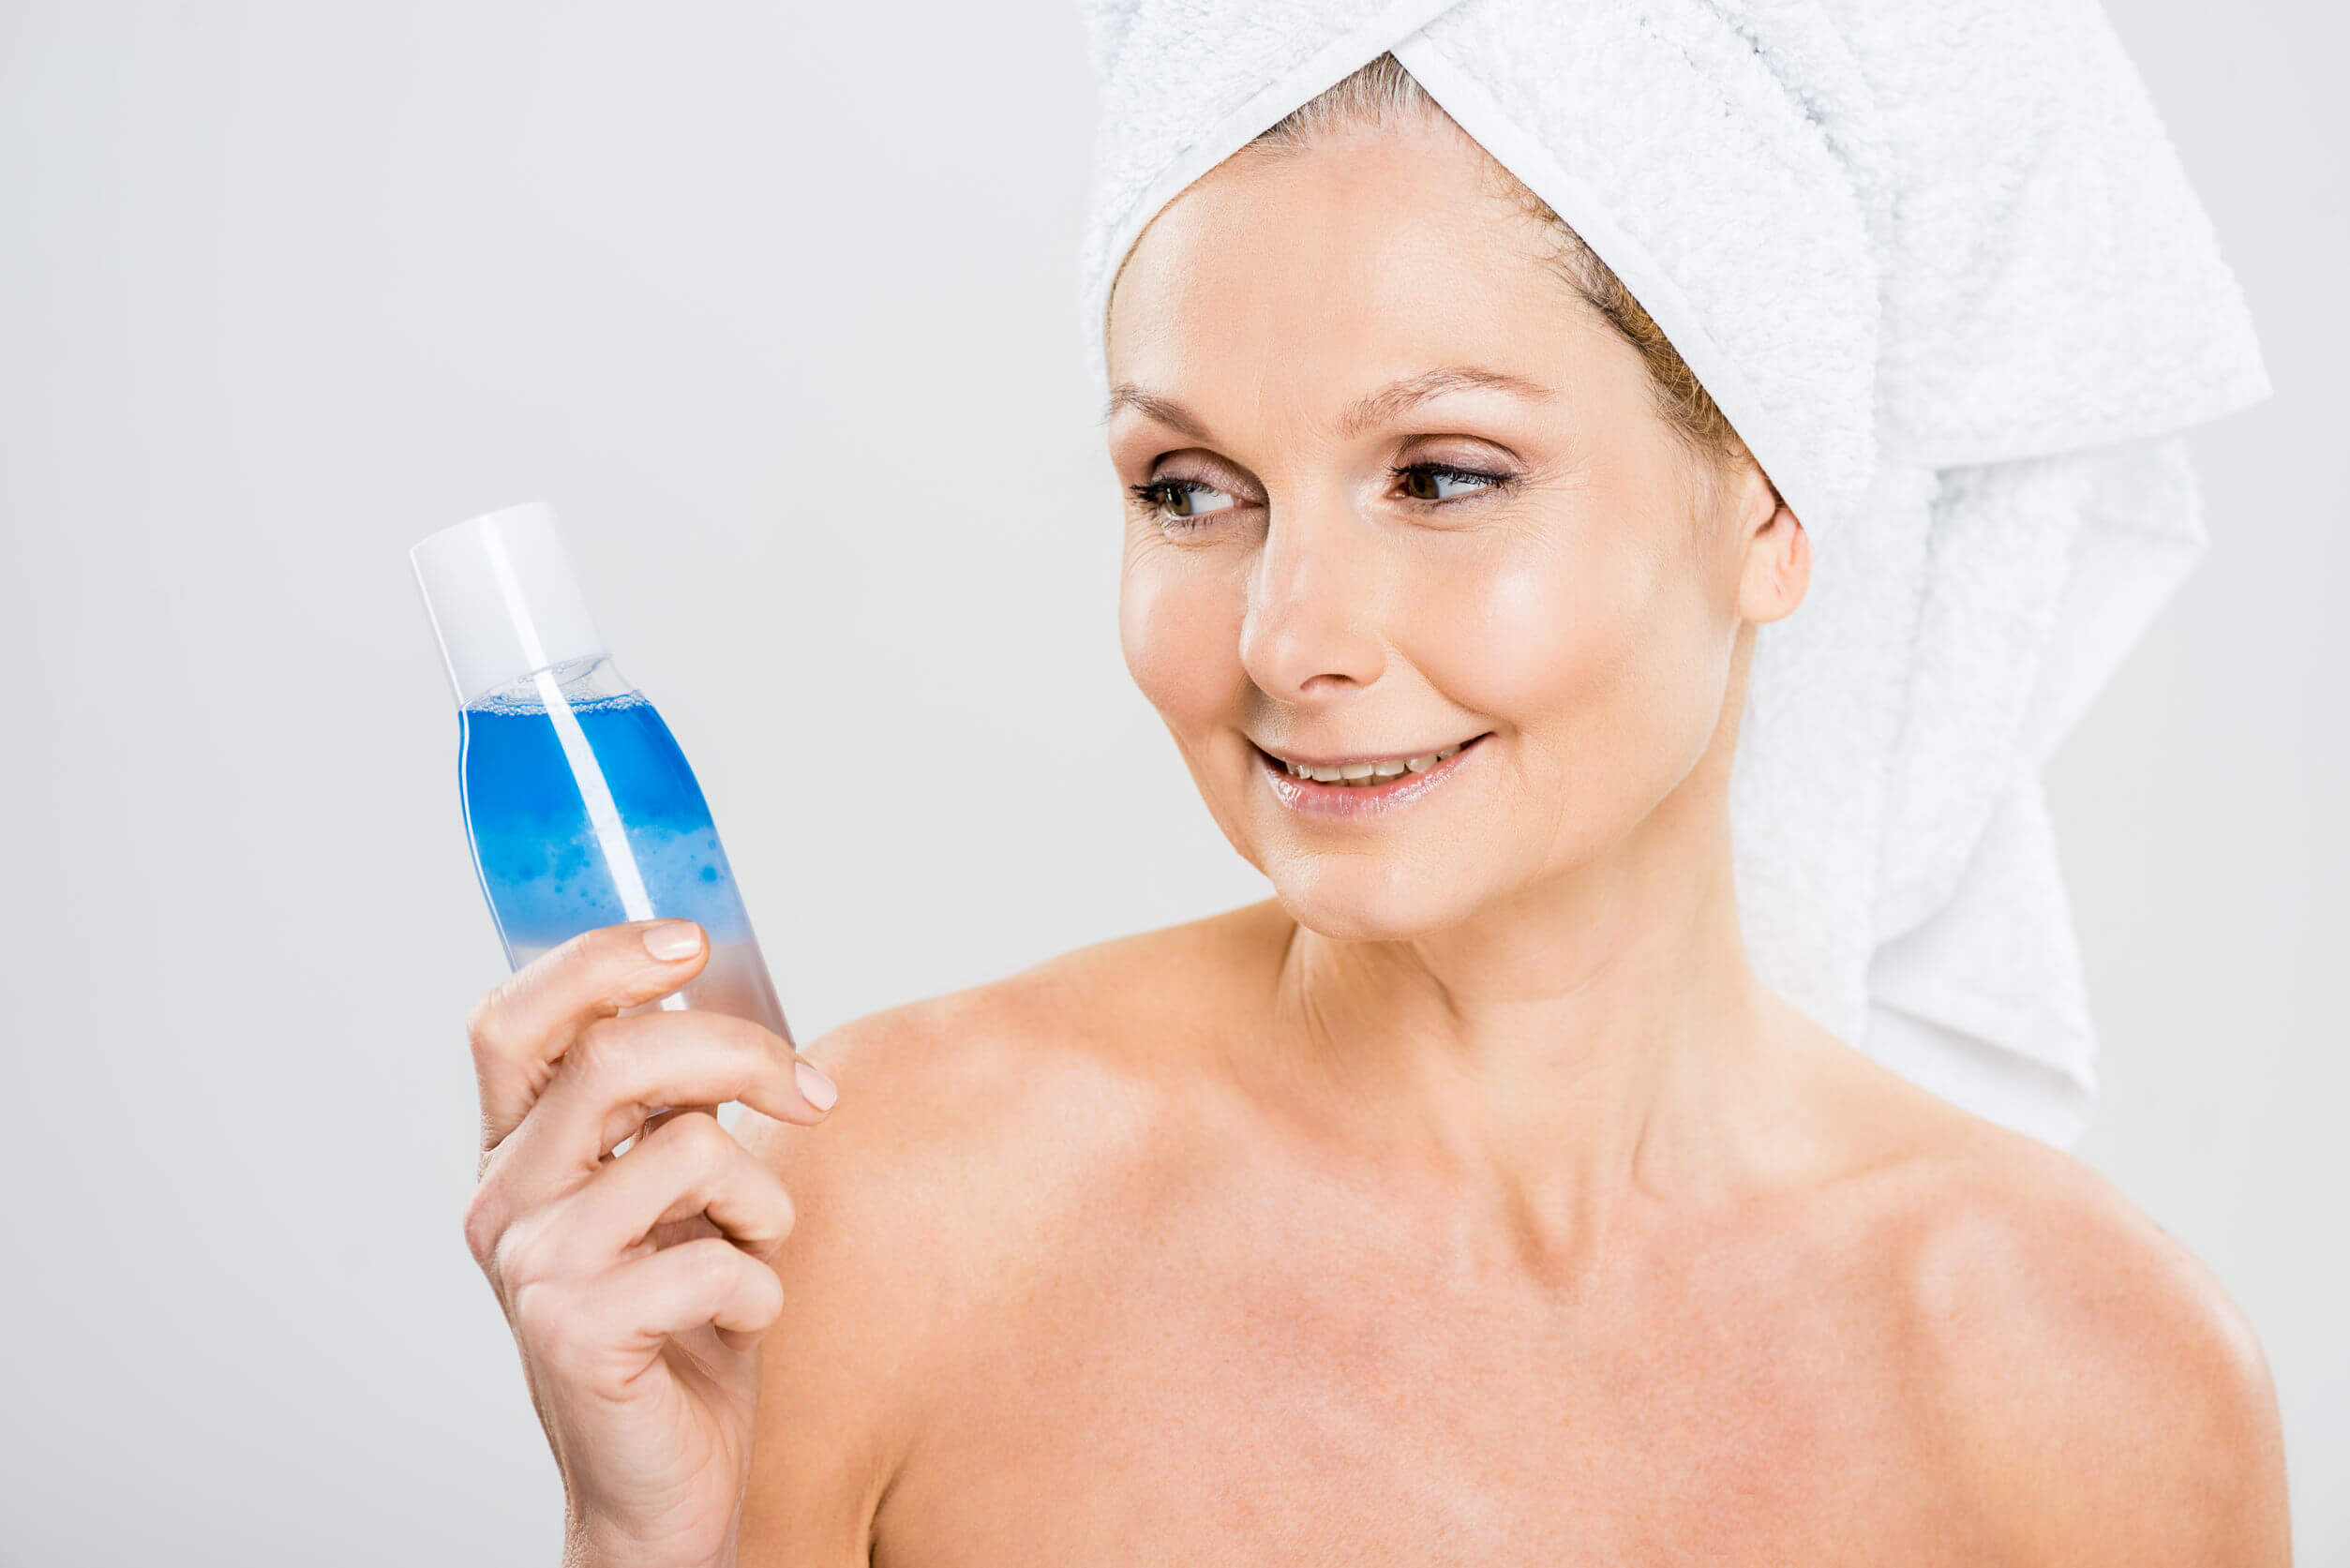 To wash the face correctly it is necessary to use several substances.